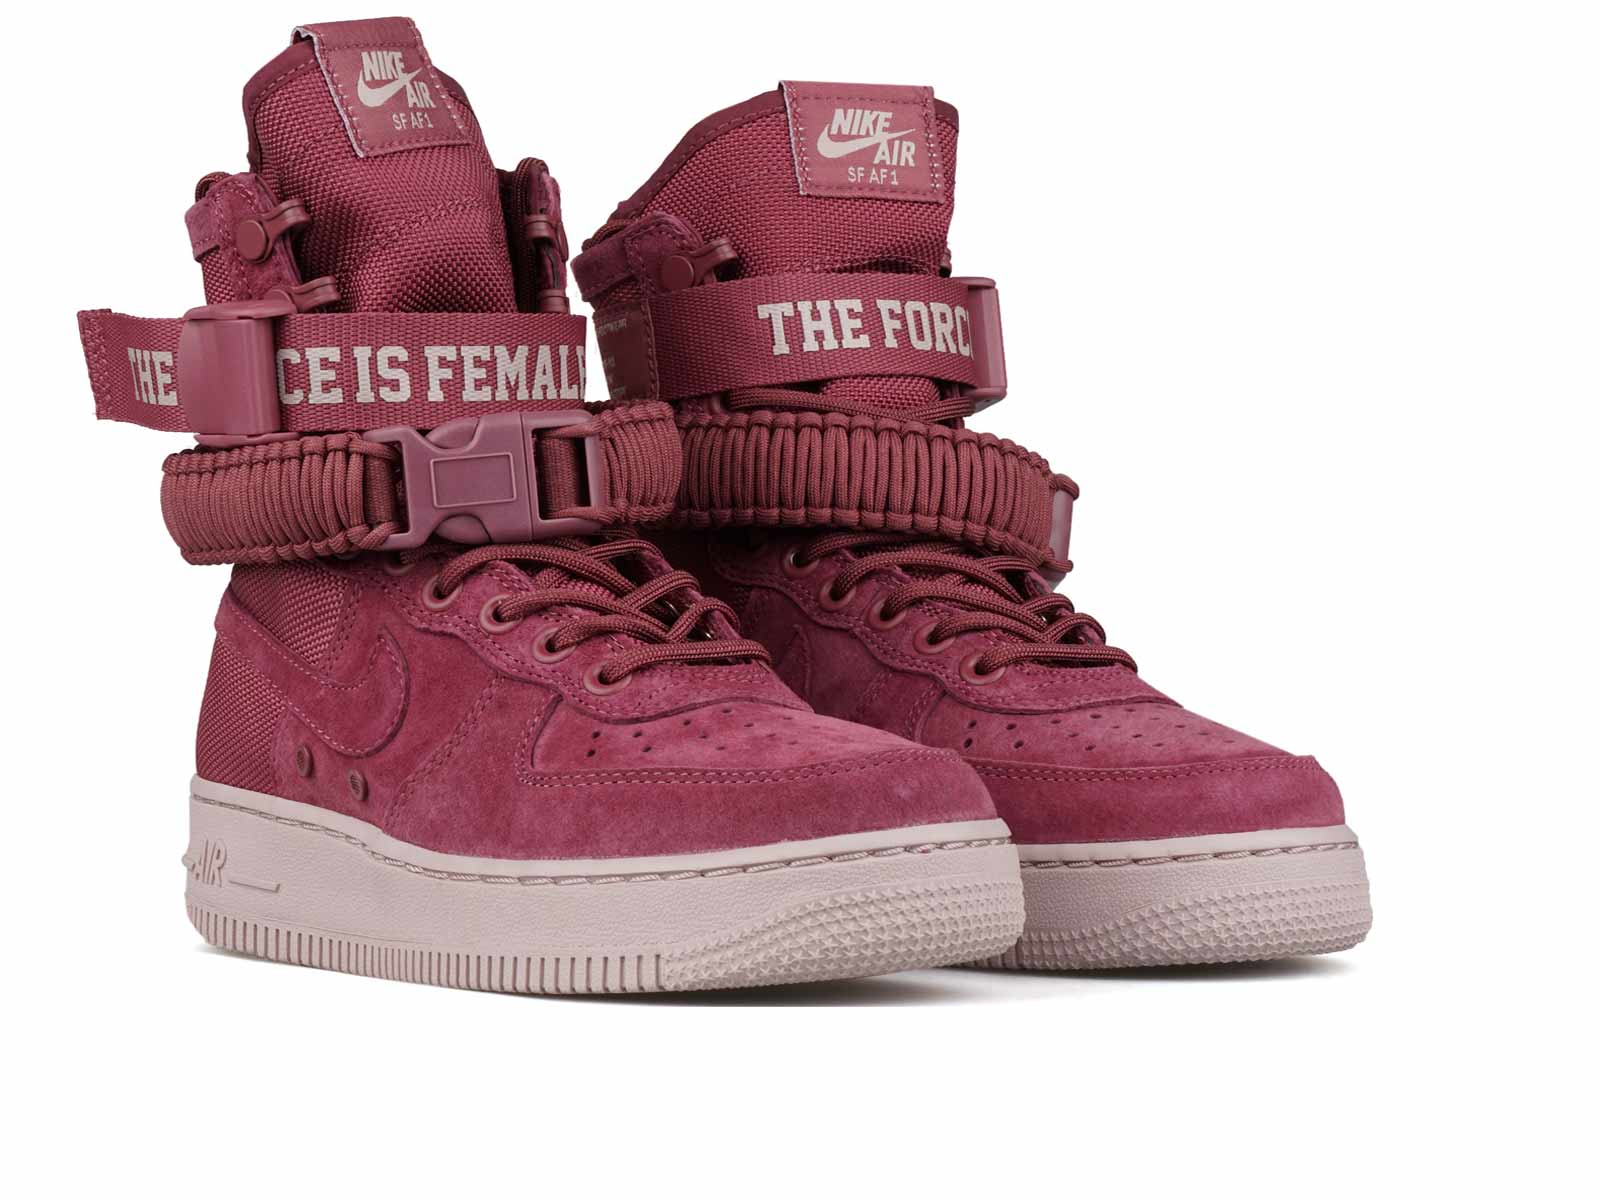 """11719e4f666f4 The ankle strap also allows you to customize the style of the shoe as it  holds """"FORCE IS FEMALE"""" detail. Sitting amongst a pink midsole, this shoe  is a ..."""